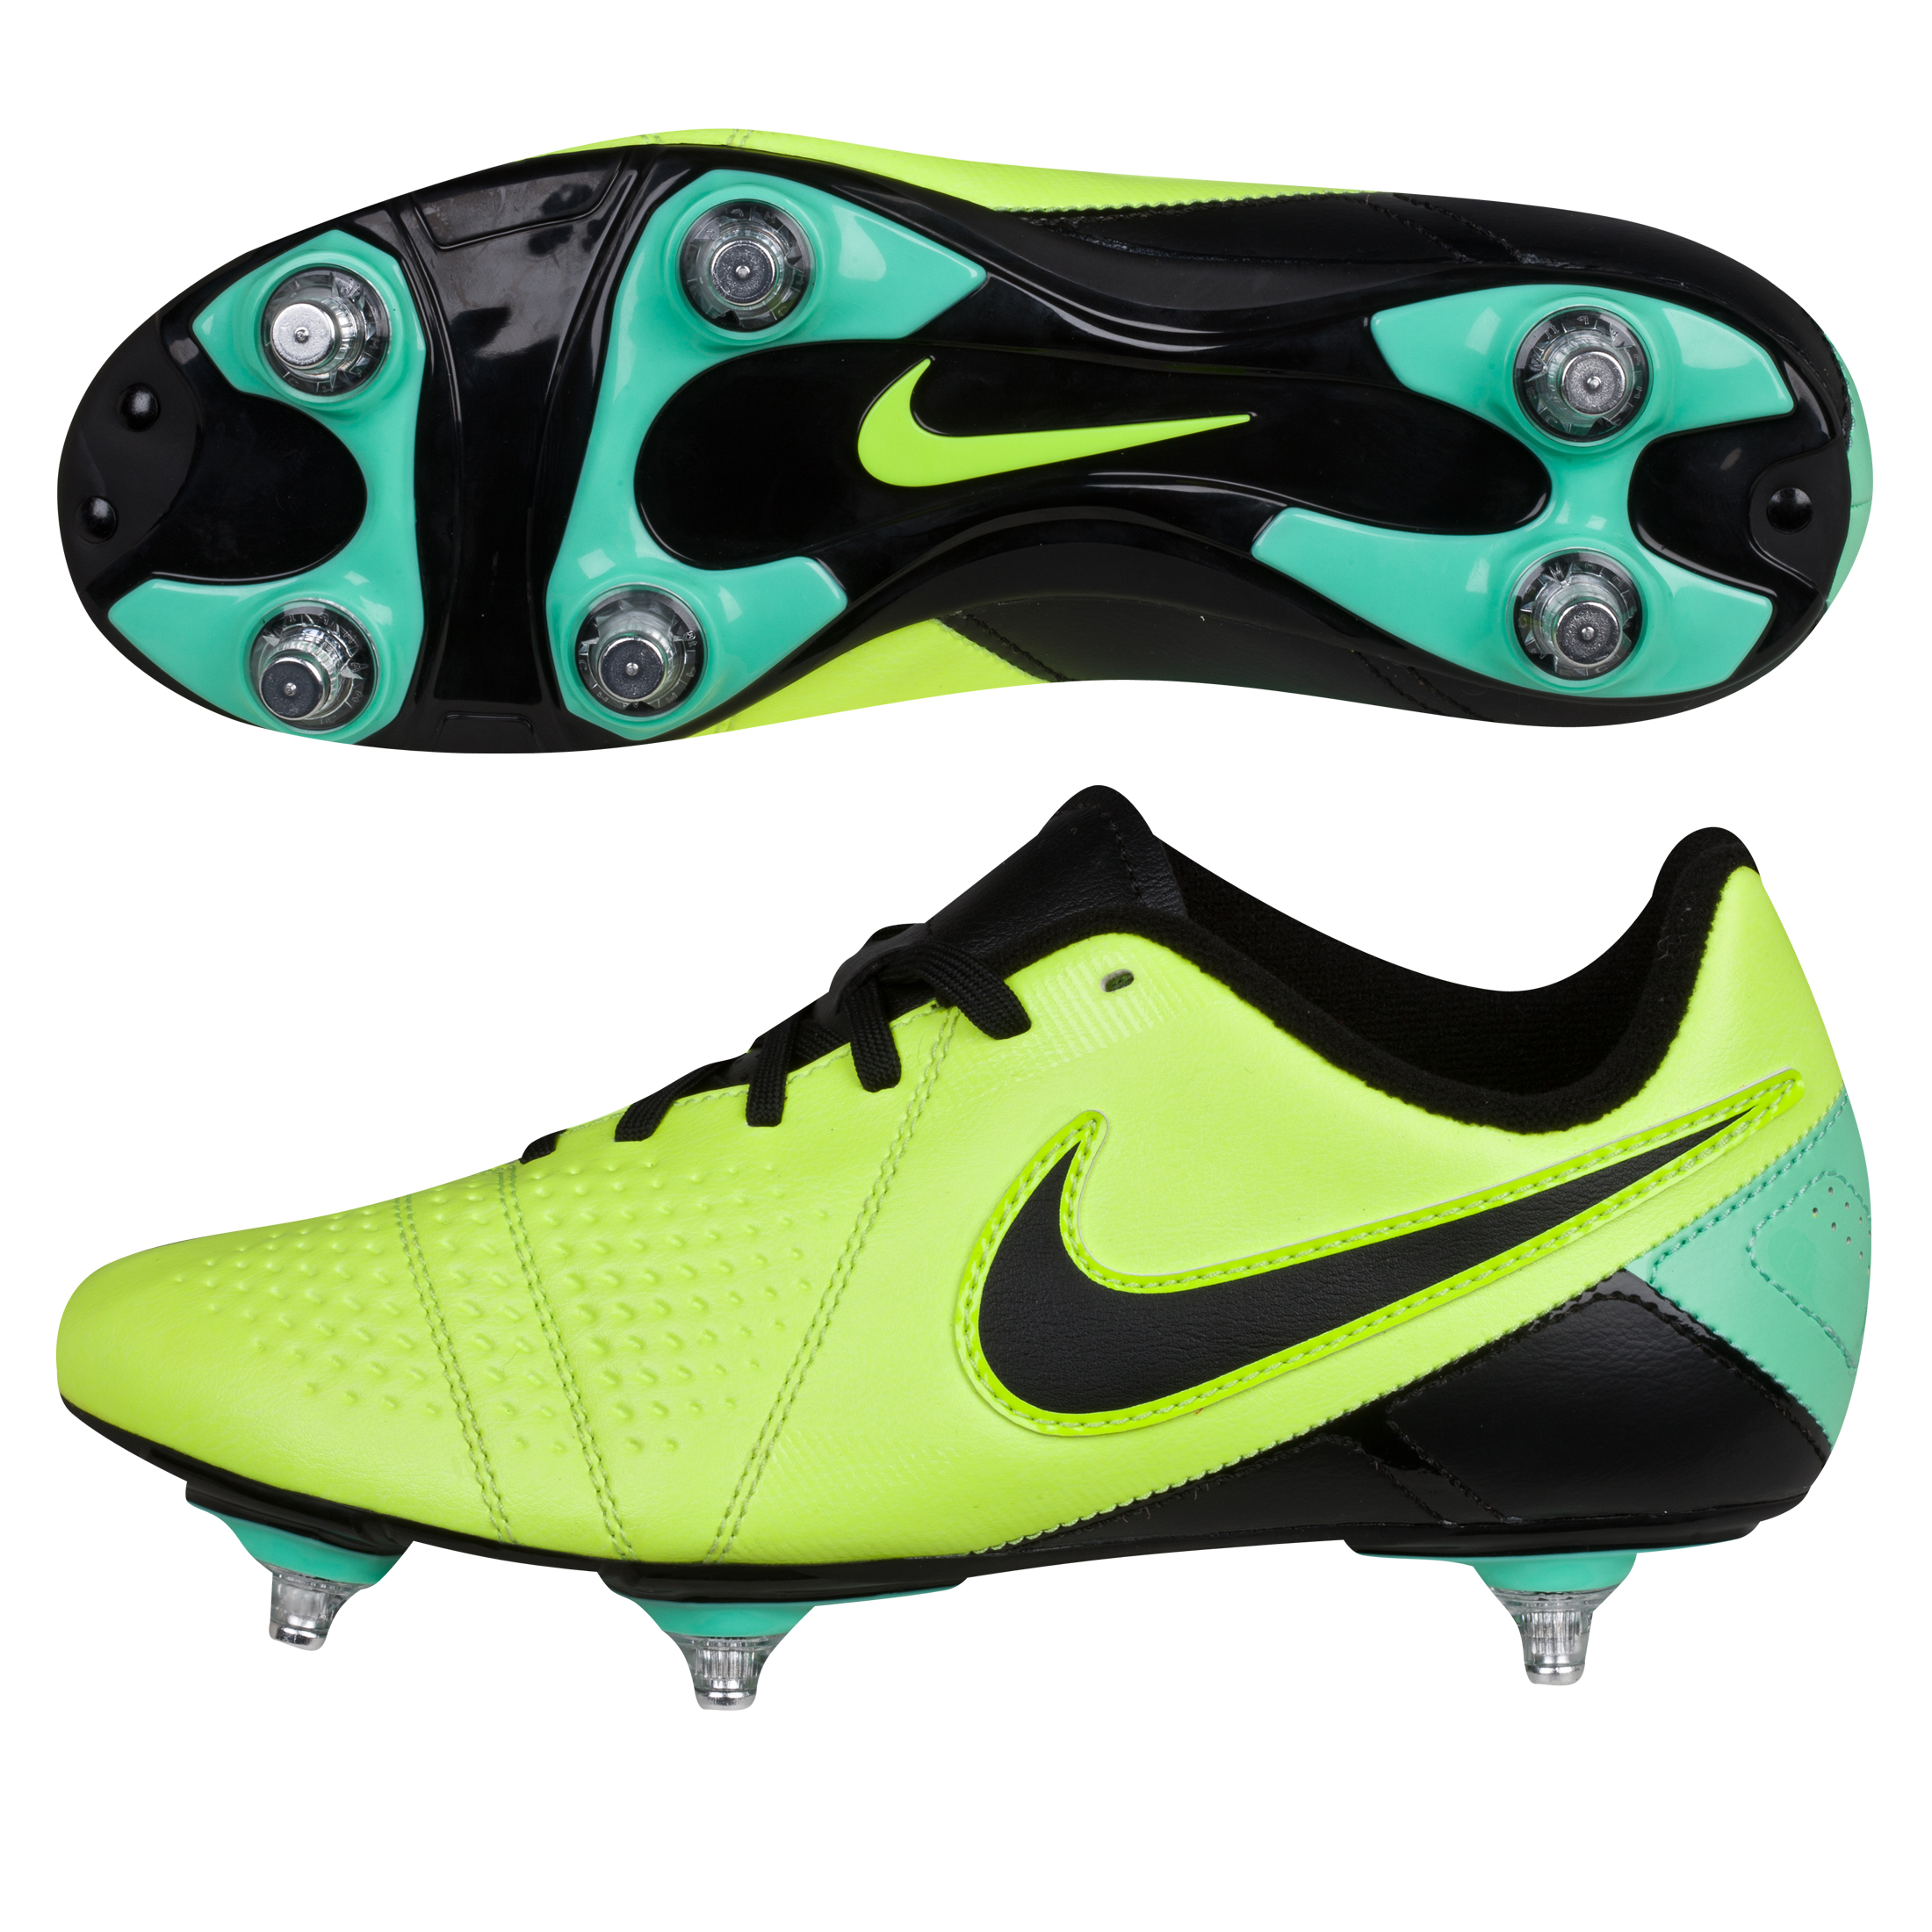 Nike CTR360 Libretto III Soft Ground Football Boots - Kids Yellow